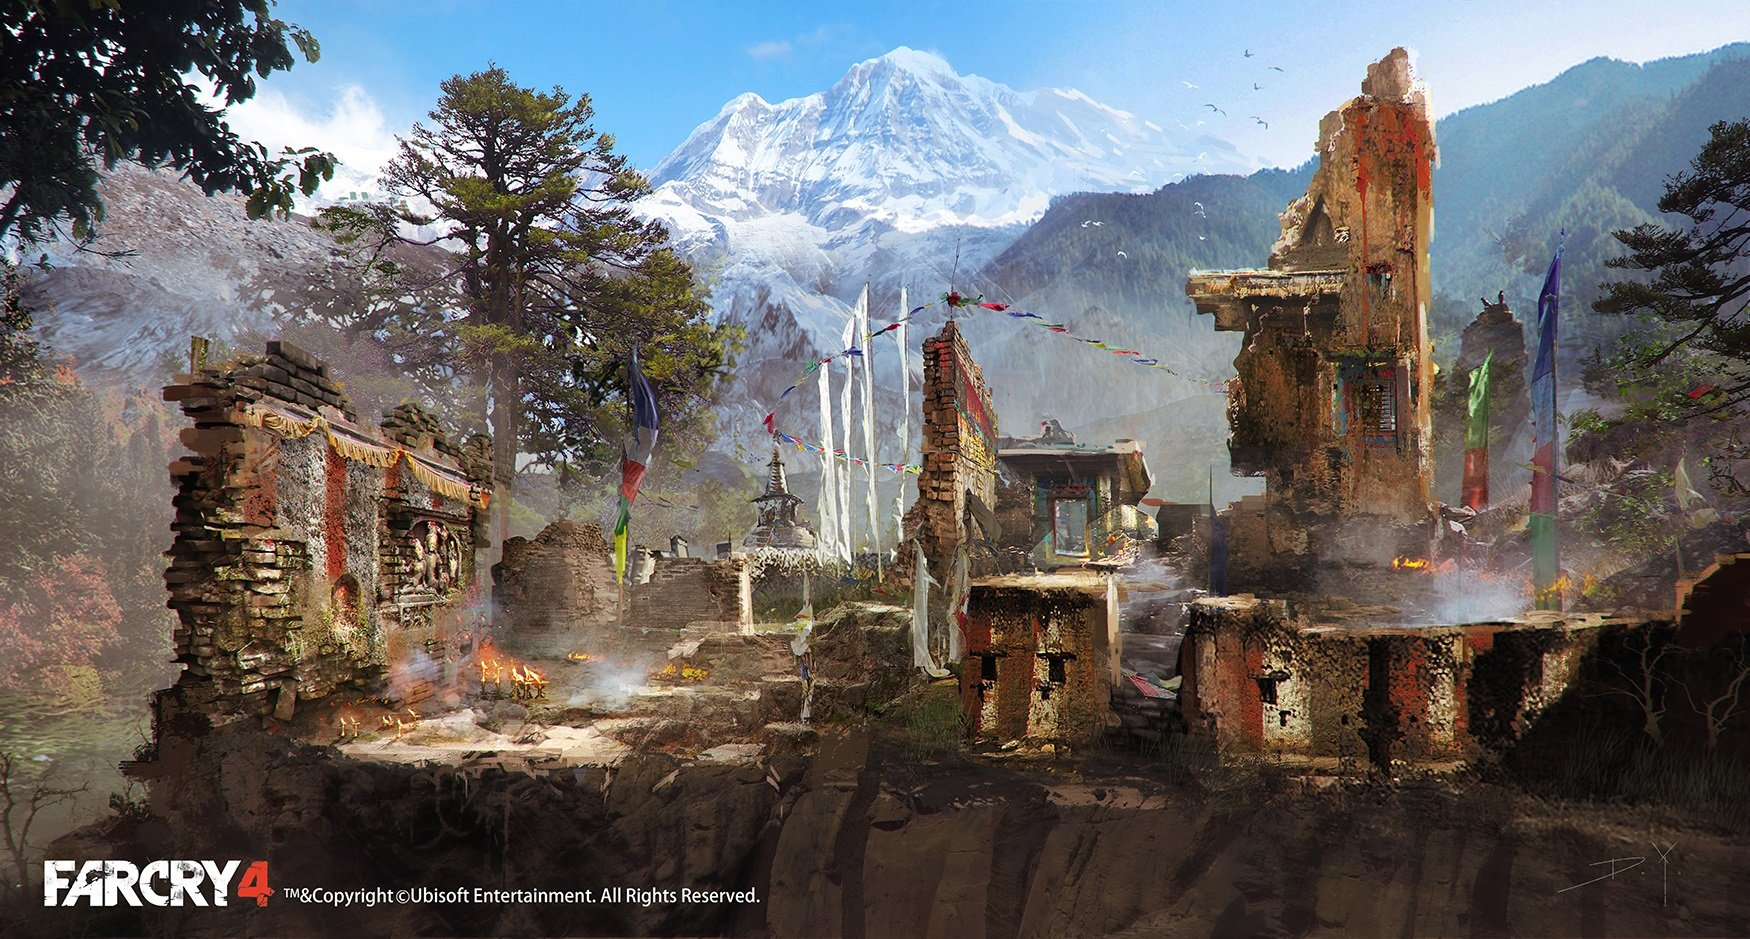 Chinese Girl Painting Wallpaper Artstation Farcry4 Concept Art Ruins Donglu Yu